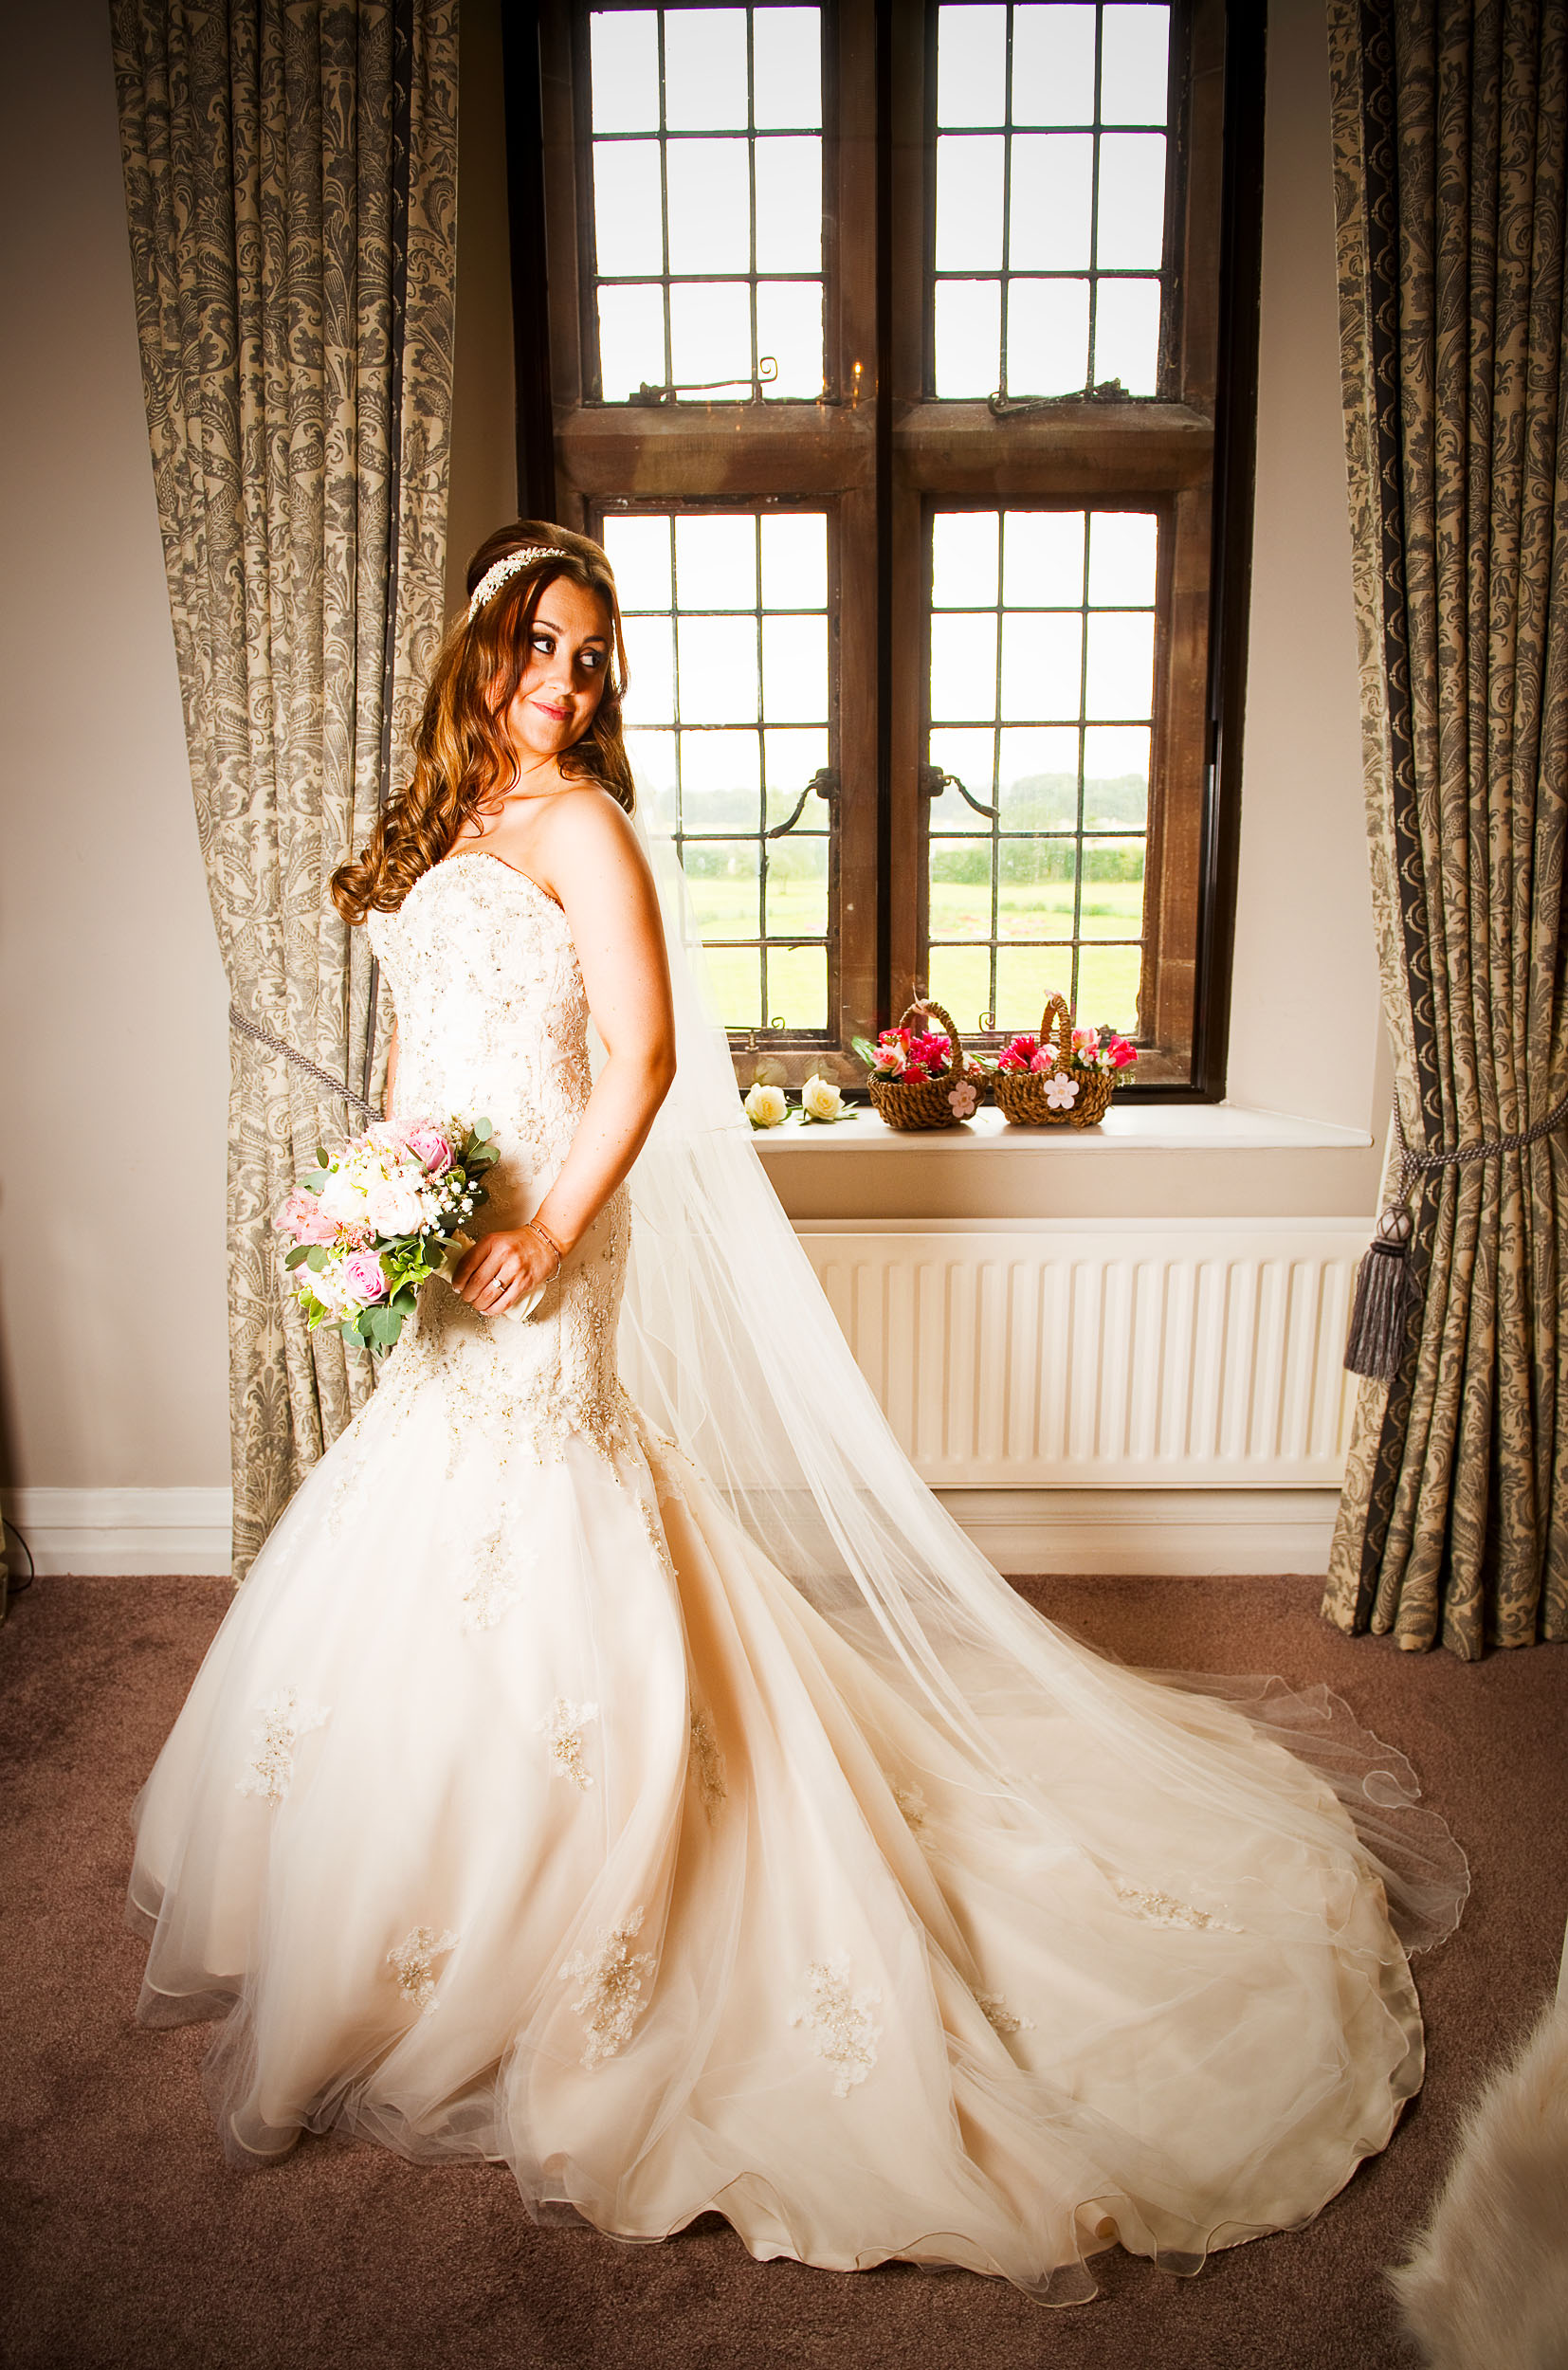 This beautiful bride was so excited on her wedding day. It was a pleasure to photograph her emotion at  Wrenbury Hall  in the bridal suite as she got ready